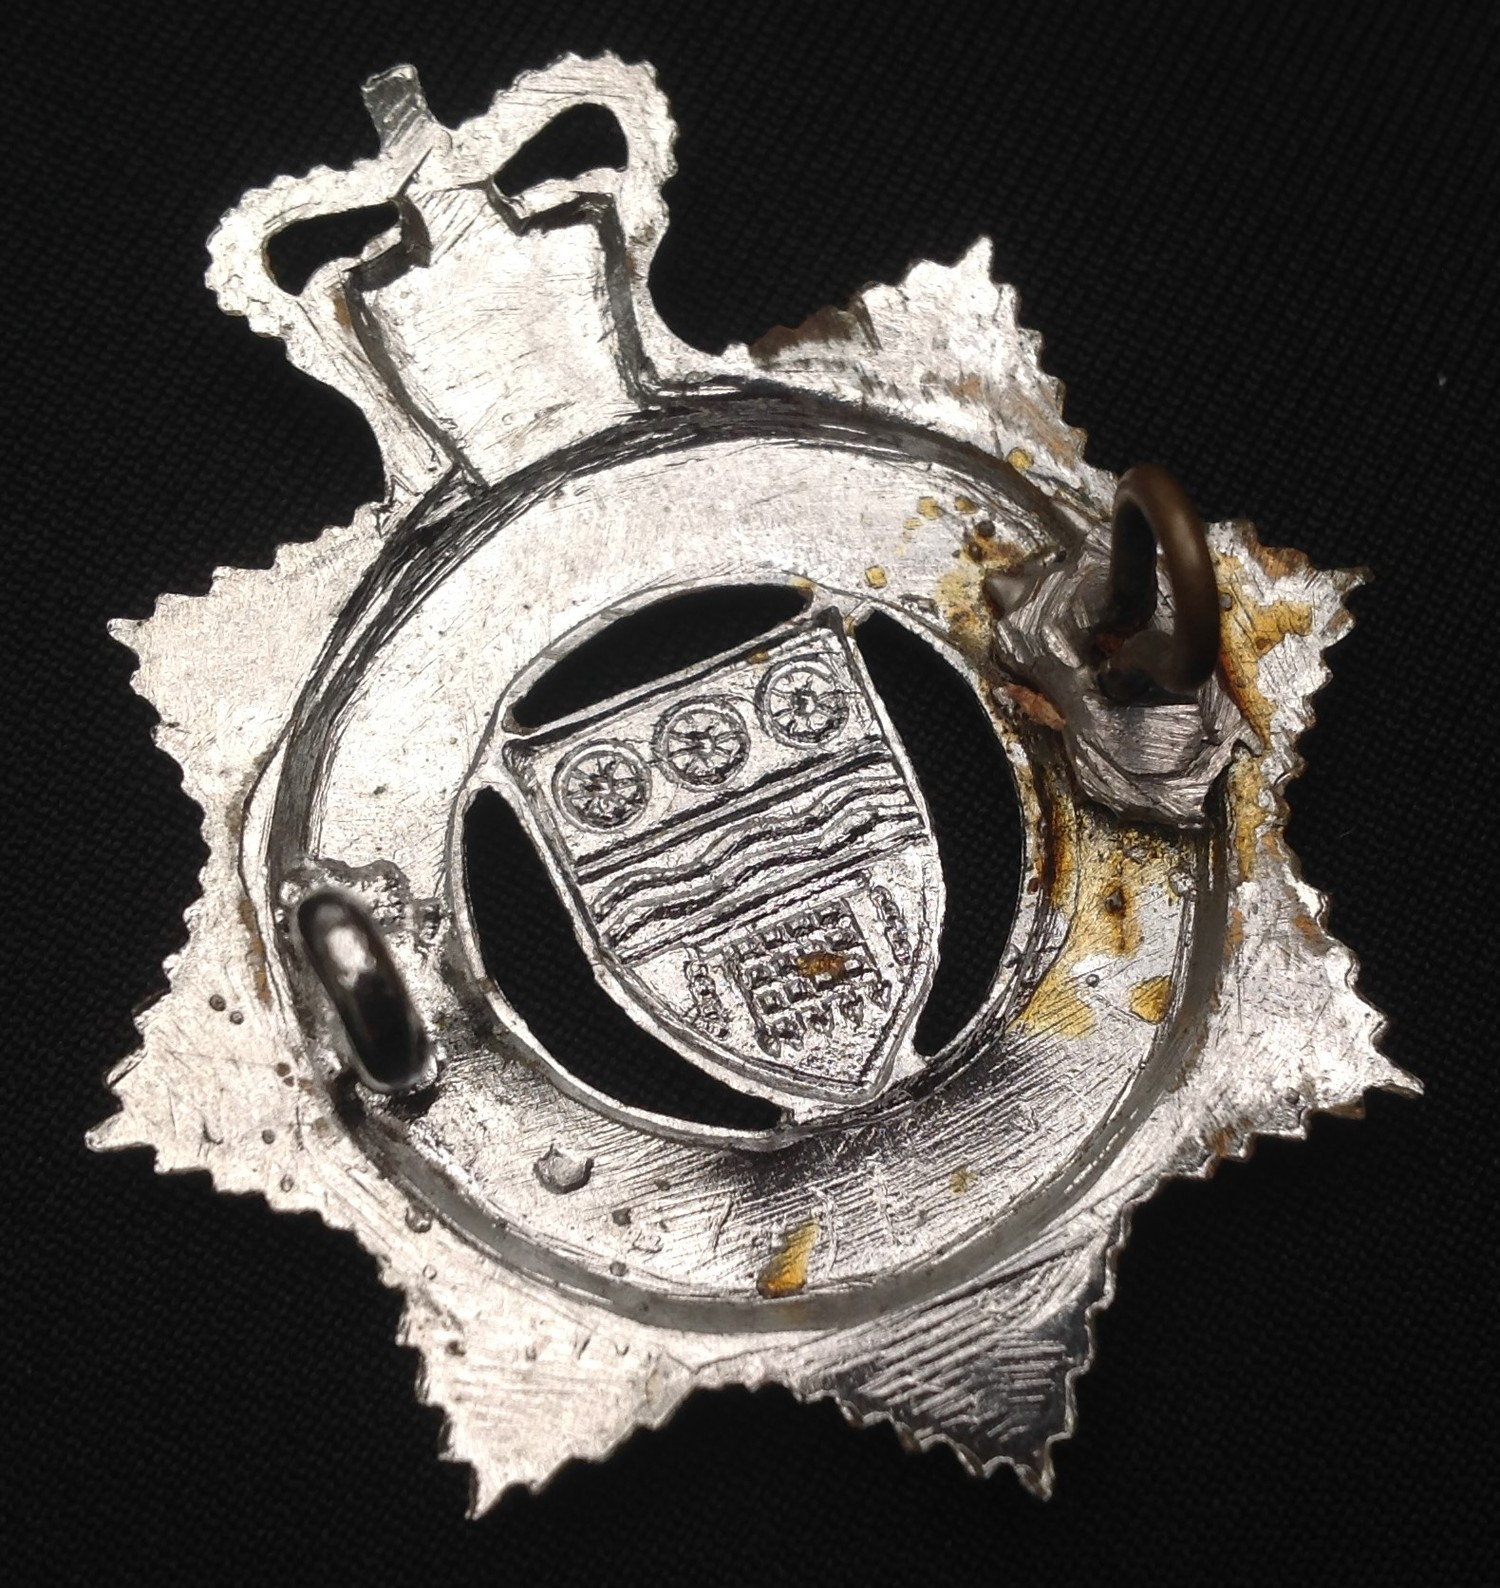 Queens Crown Officers British Transport Commision Police: Queens Crown enamelled British Transport - Image 3 of 3